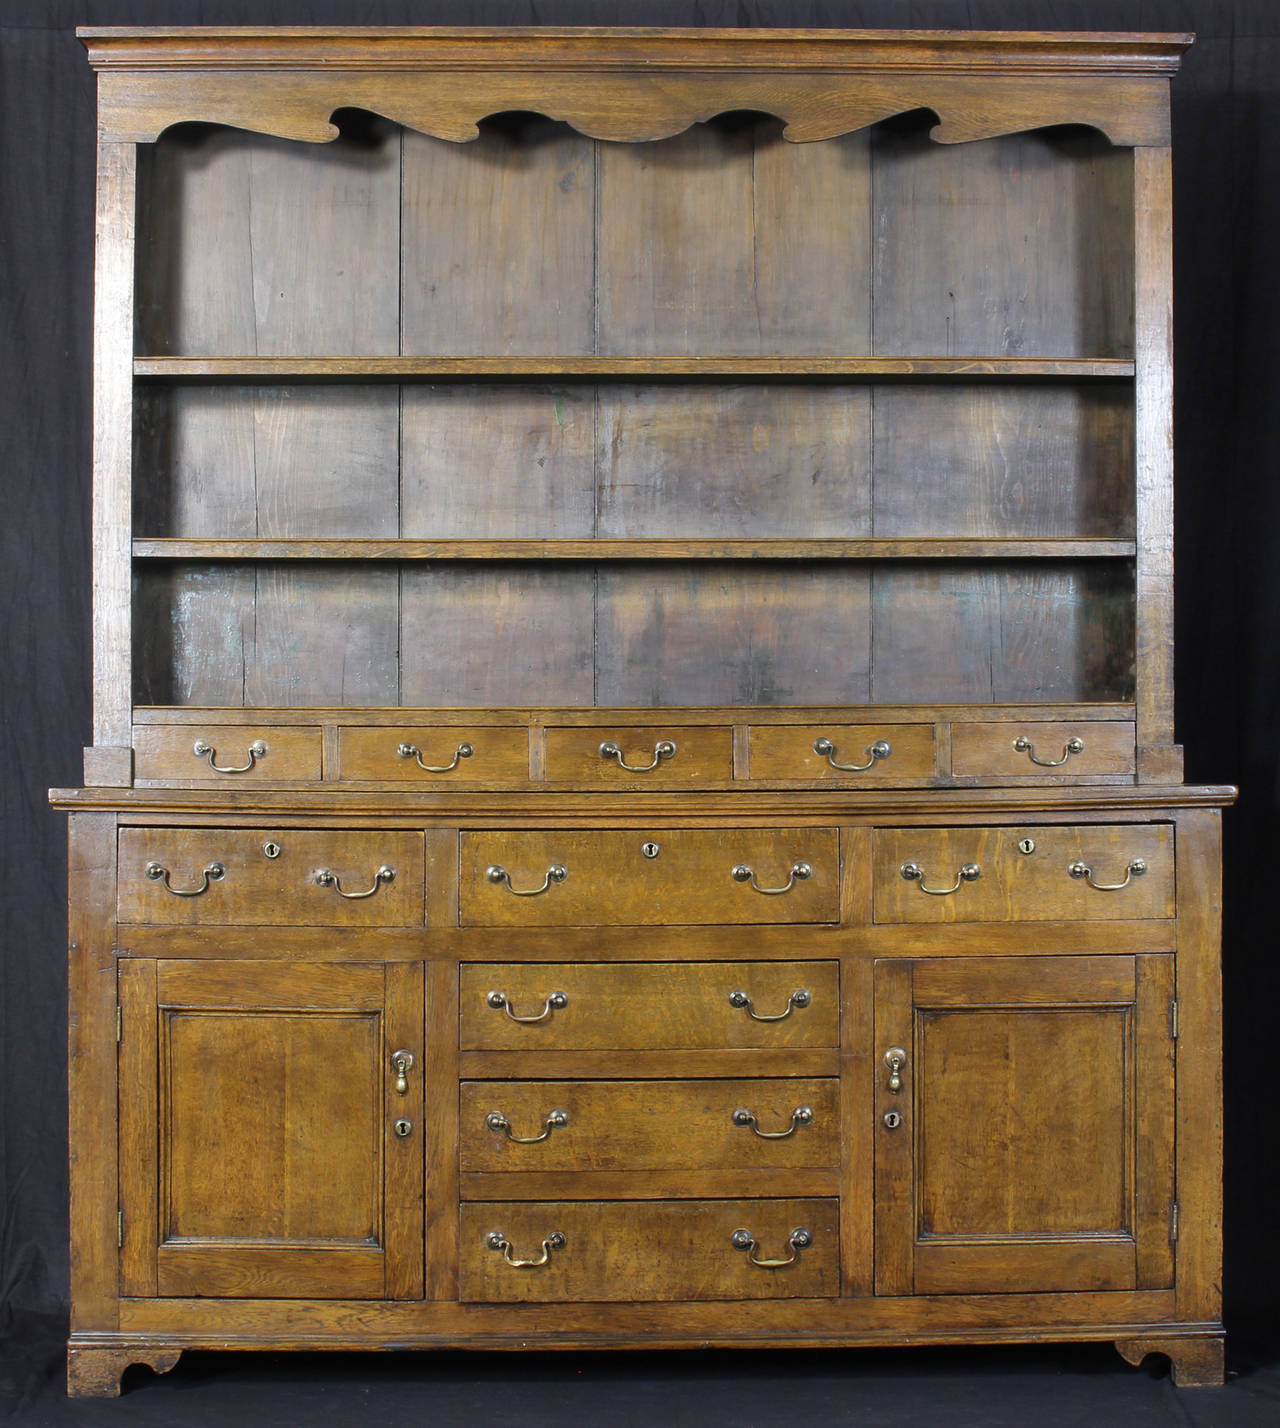 A large and impressive mid-19th century English oak dresser, with open plate rack over five spice drawers, the lower section with six drawers and two paneled doors all with original brass pulls.